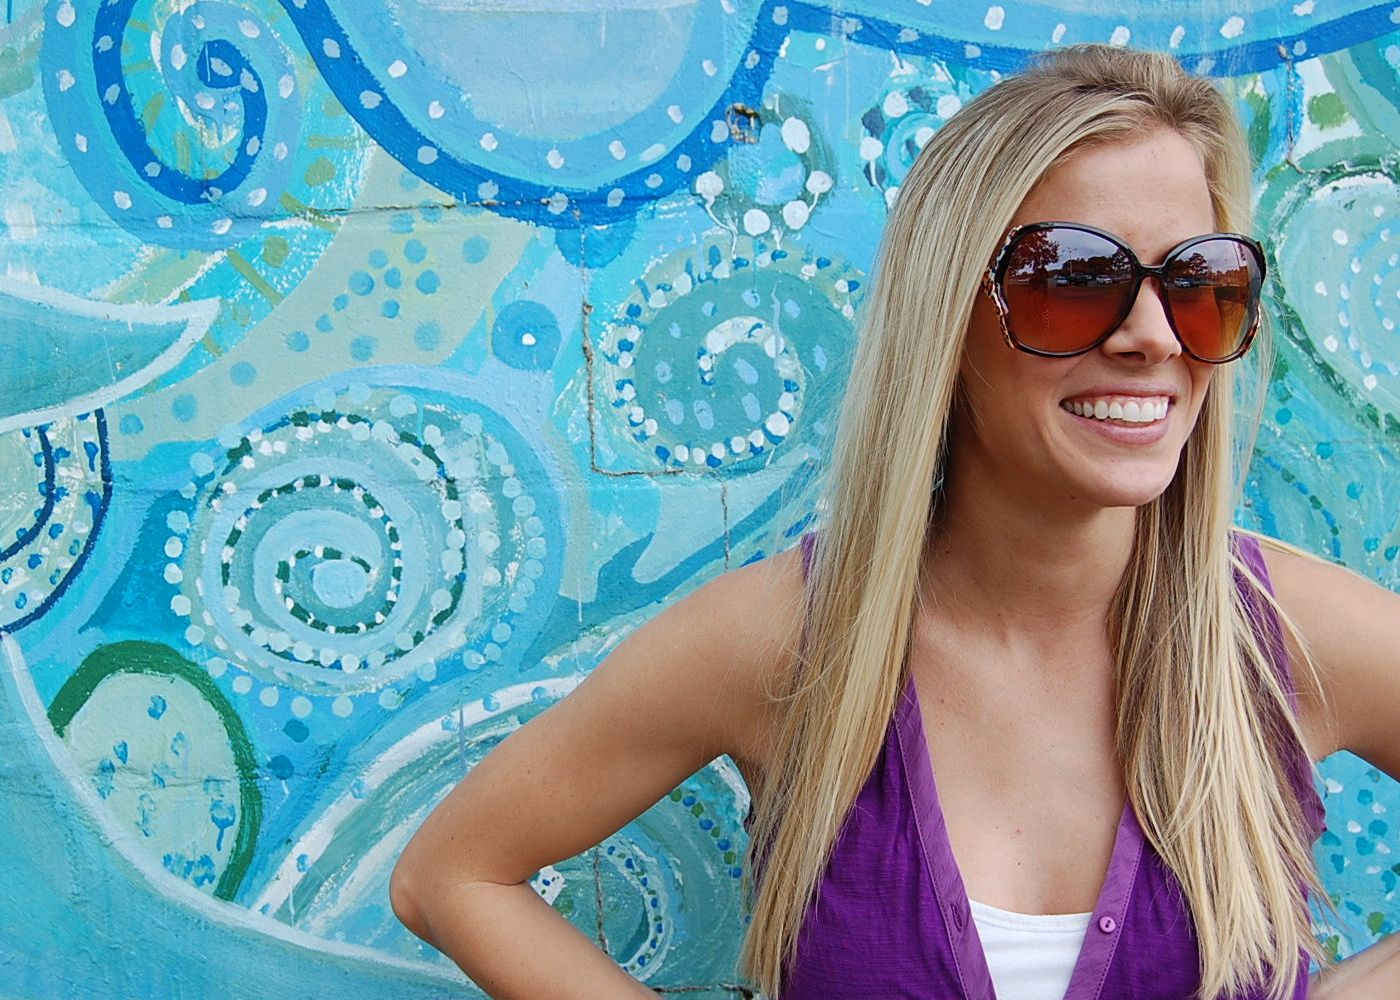 You can never have too many pairs of sunglasses! ellalane.com